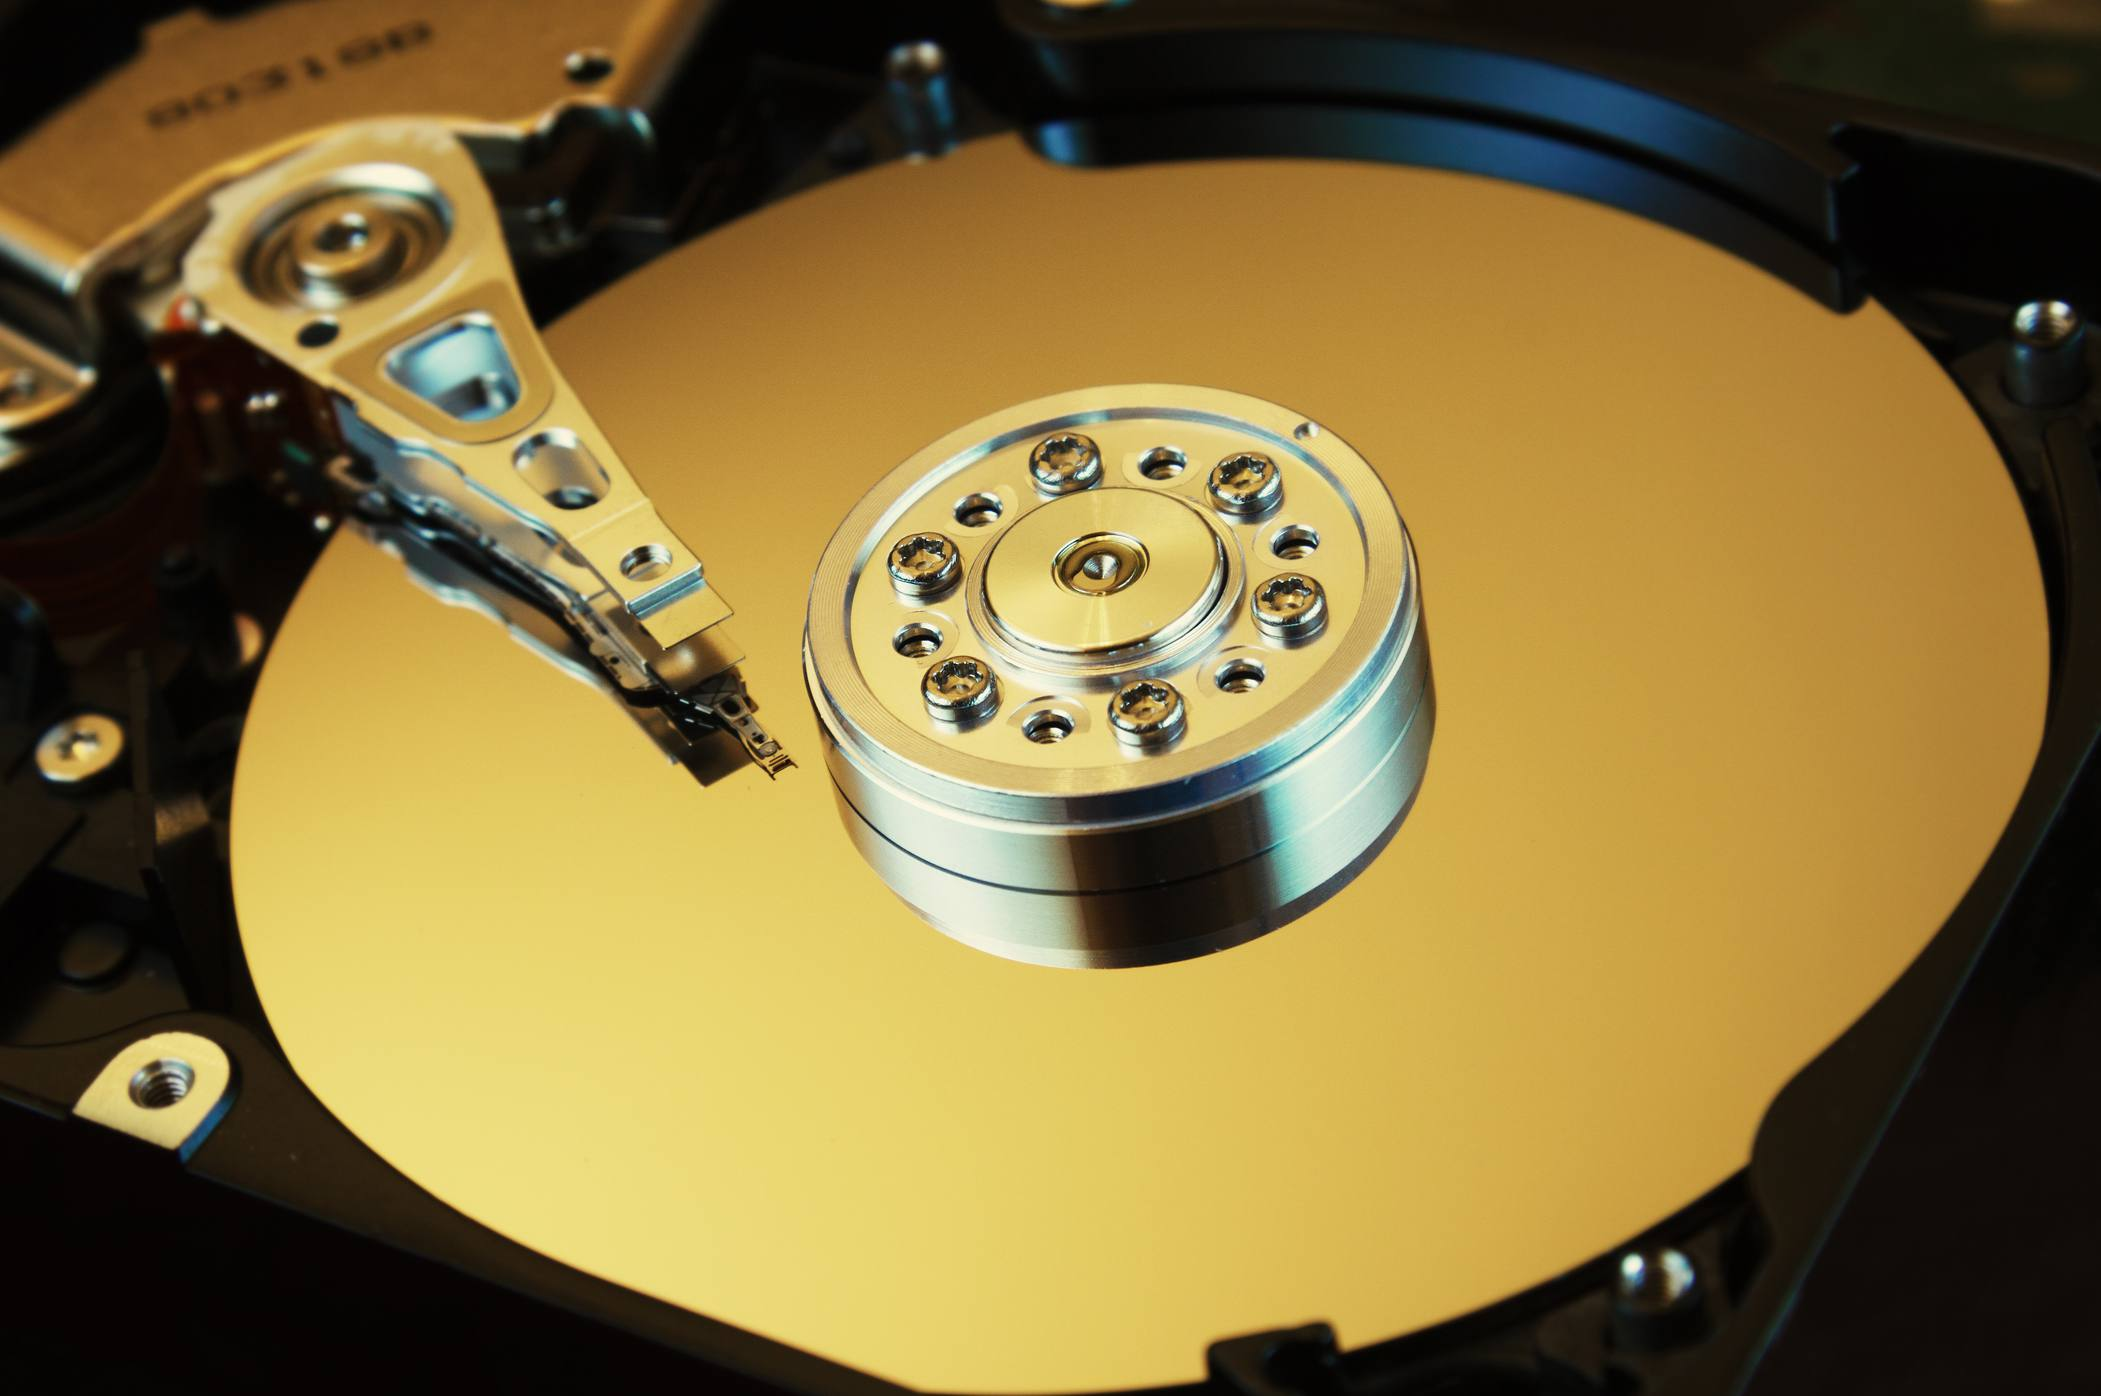 HDD Open with platters and actuator exposed.